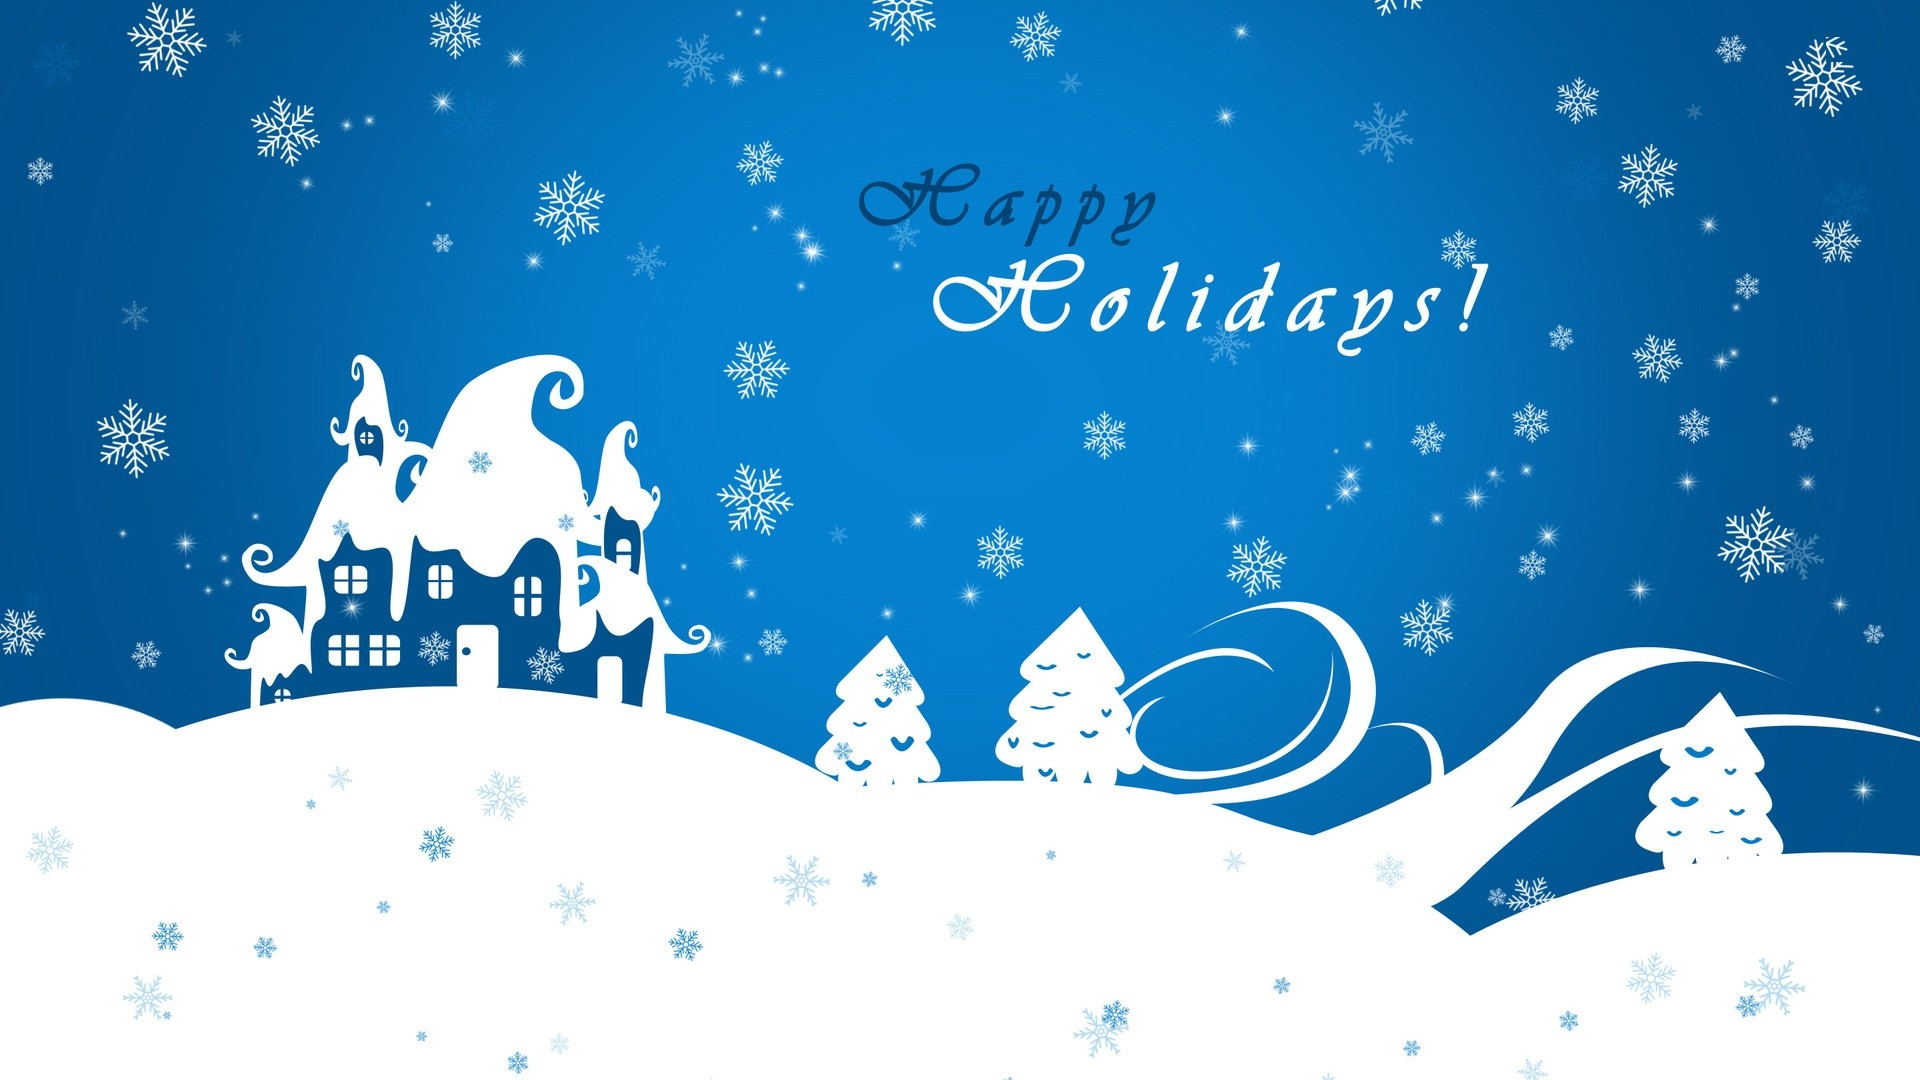 Happy Holidays HD Wallpaper Backgrounds HD Wallpapers High 1920x1080